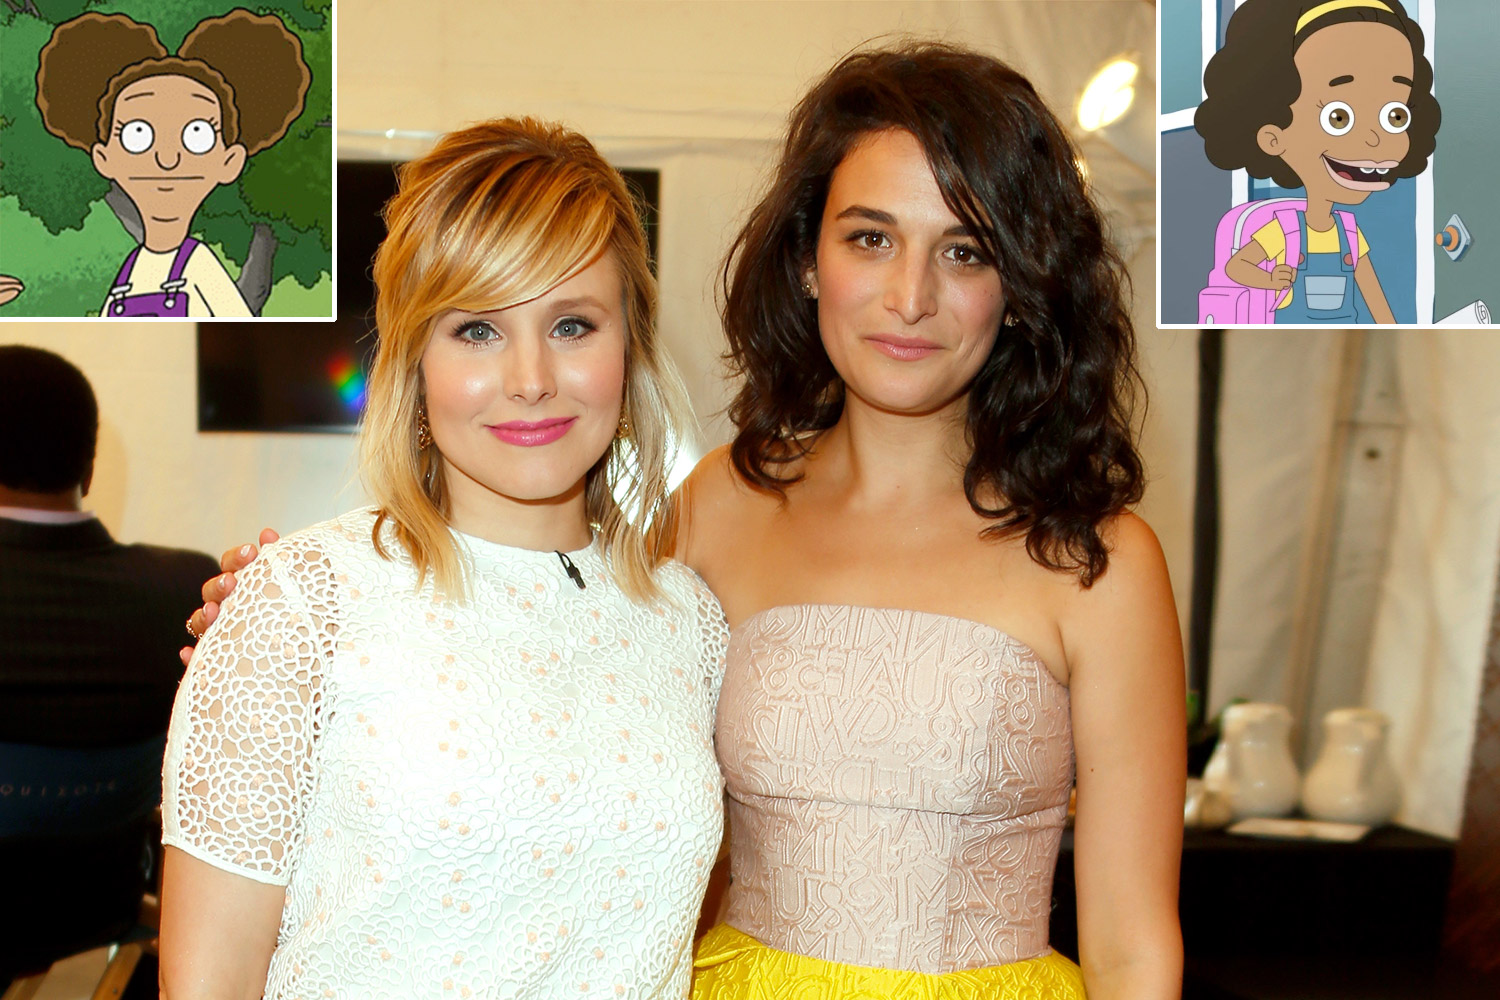 kristen-bell-and-jenny-slate-to-no-longer-voice-mixed-characters-on-animated-series-they-call-for-black-actresses-to-take-over-the-roles